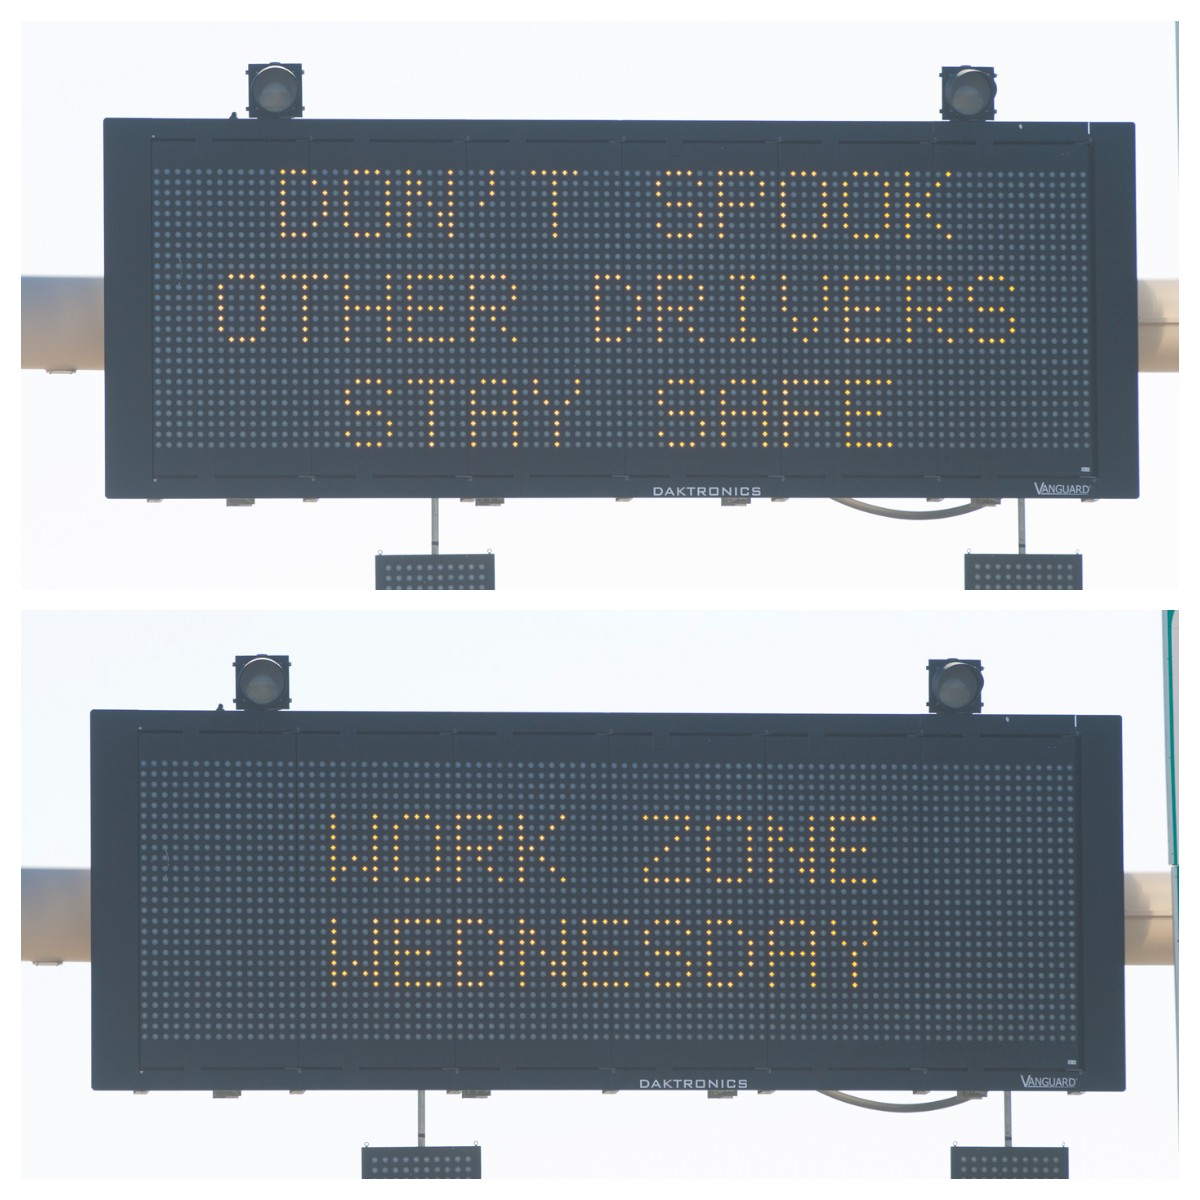 /content/dam/ok/en/odot/images/message-signs/10.26.16.jpg